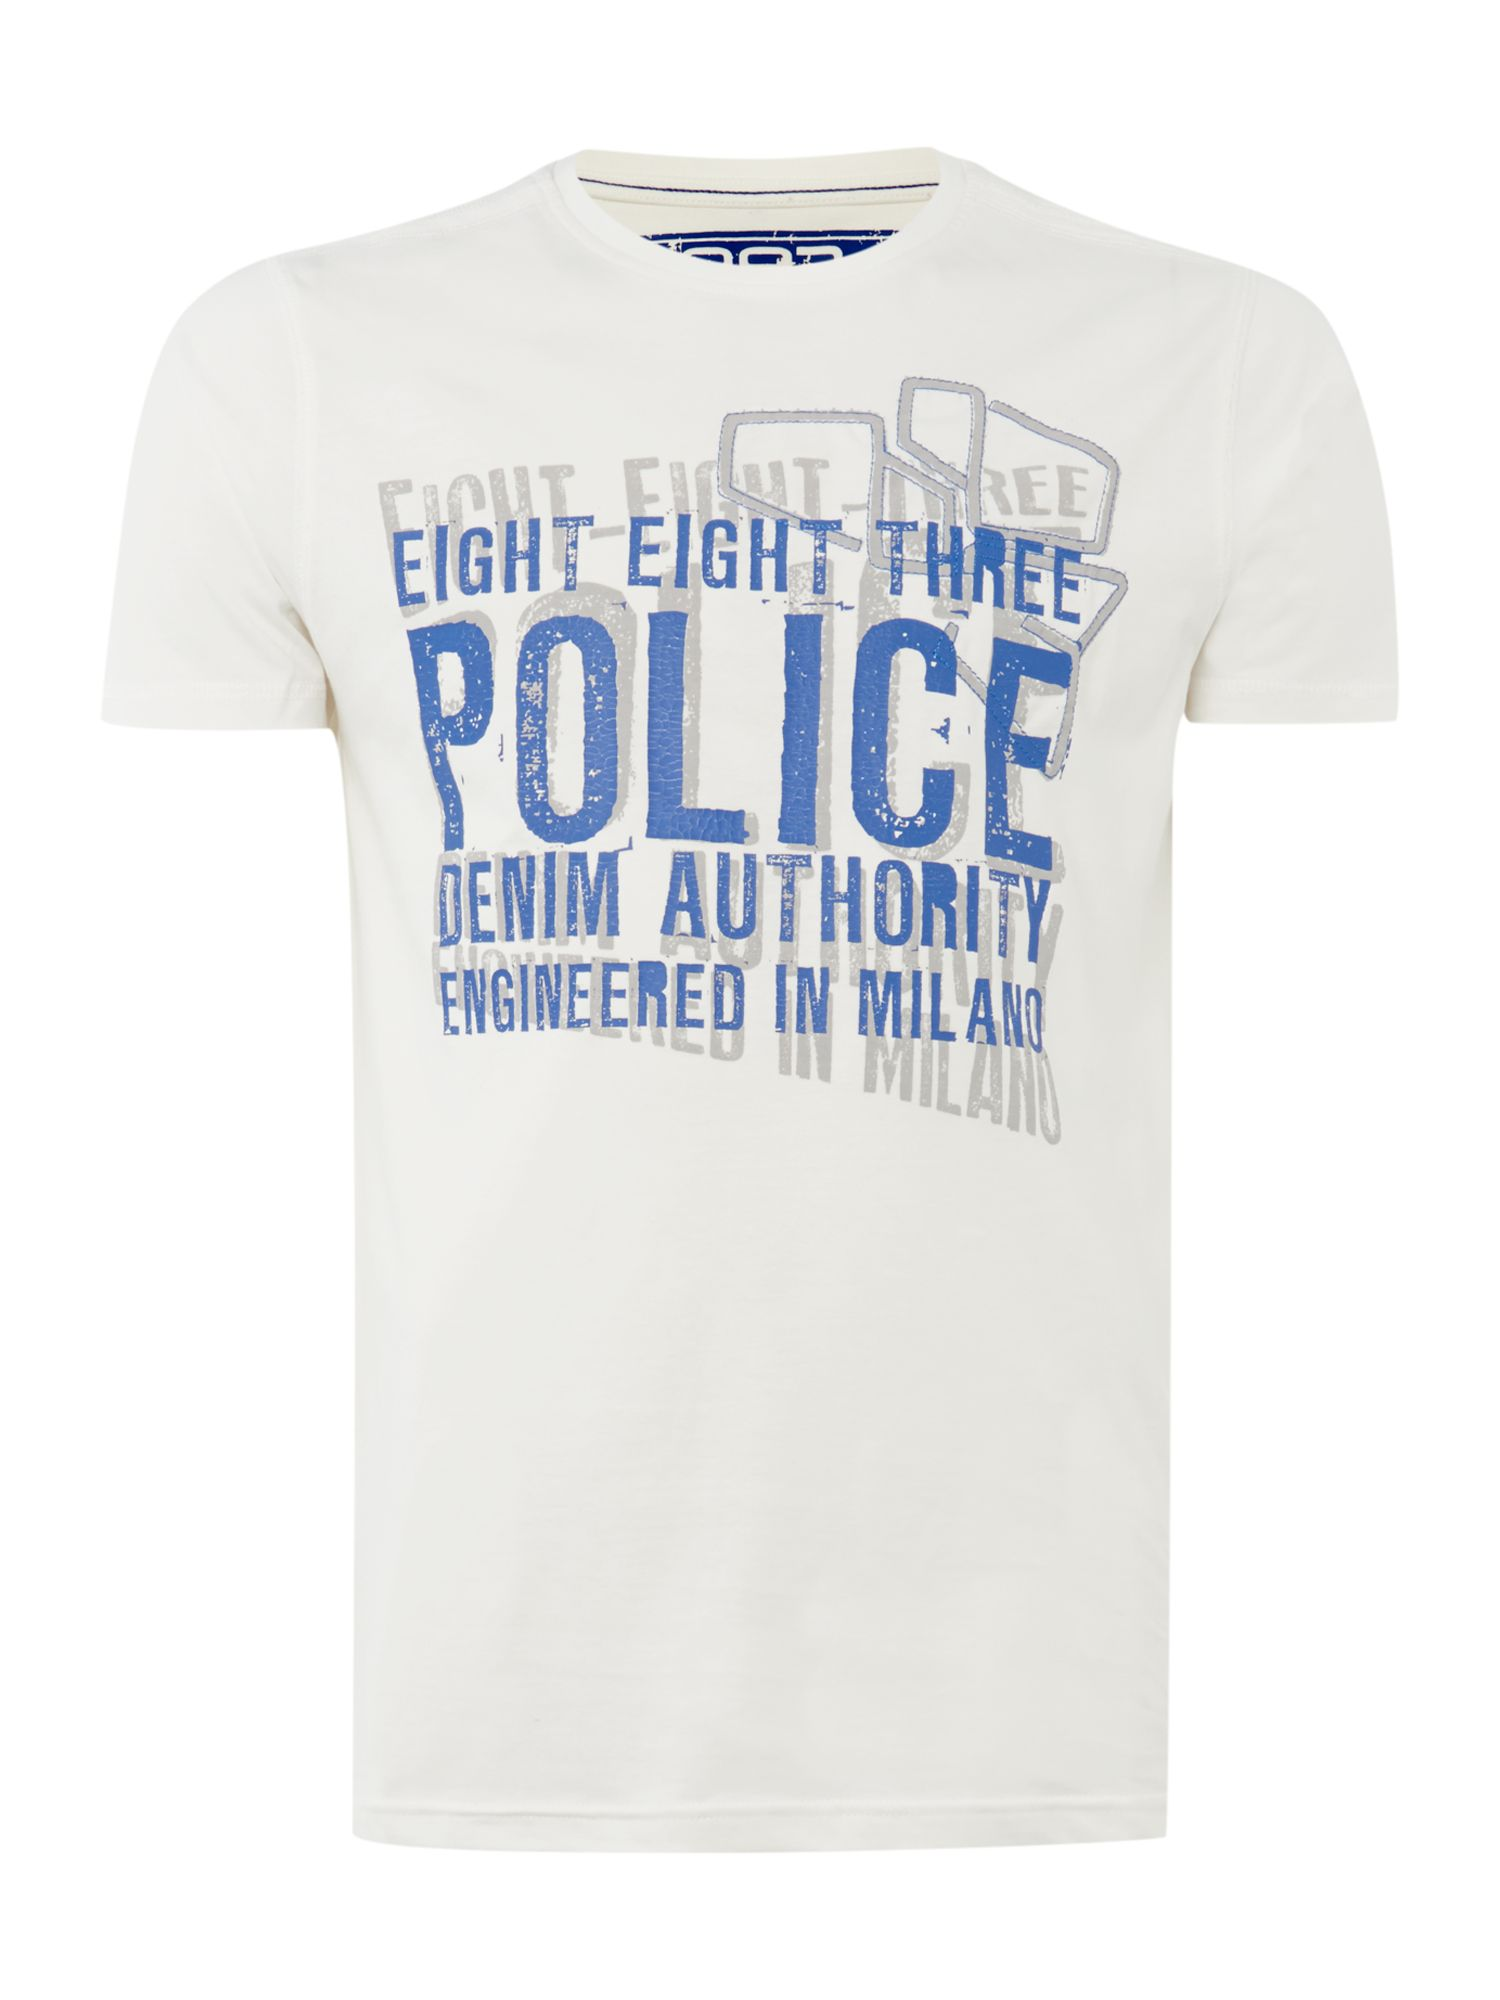 Police logo denim authority short sleeve t-shirt